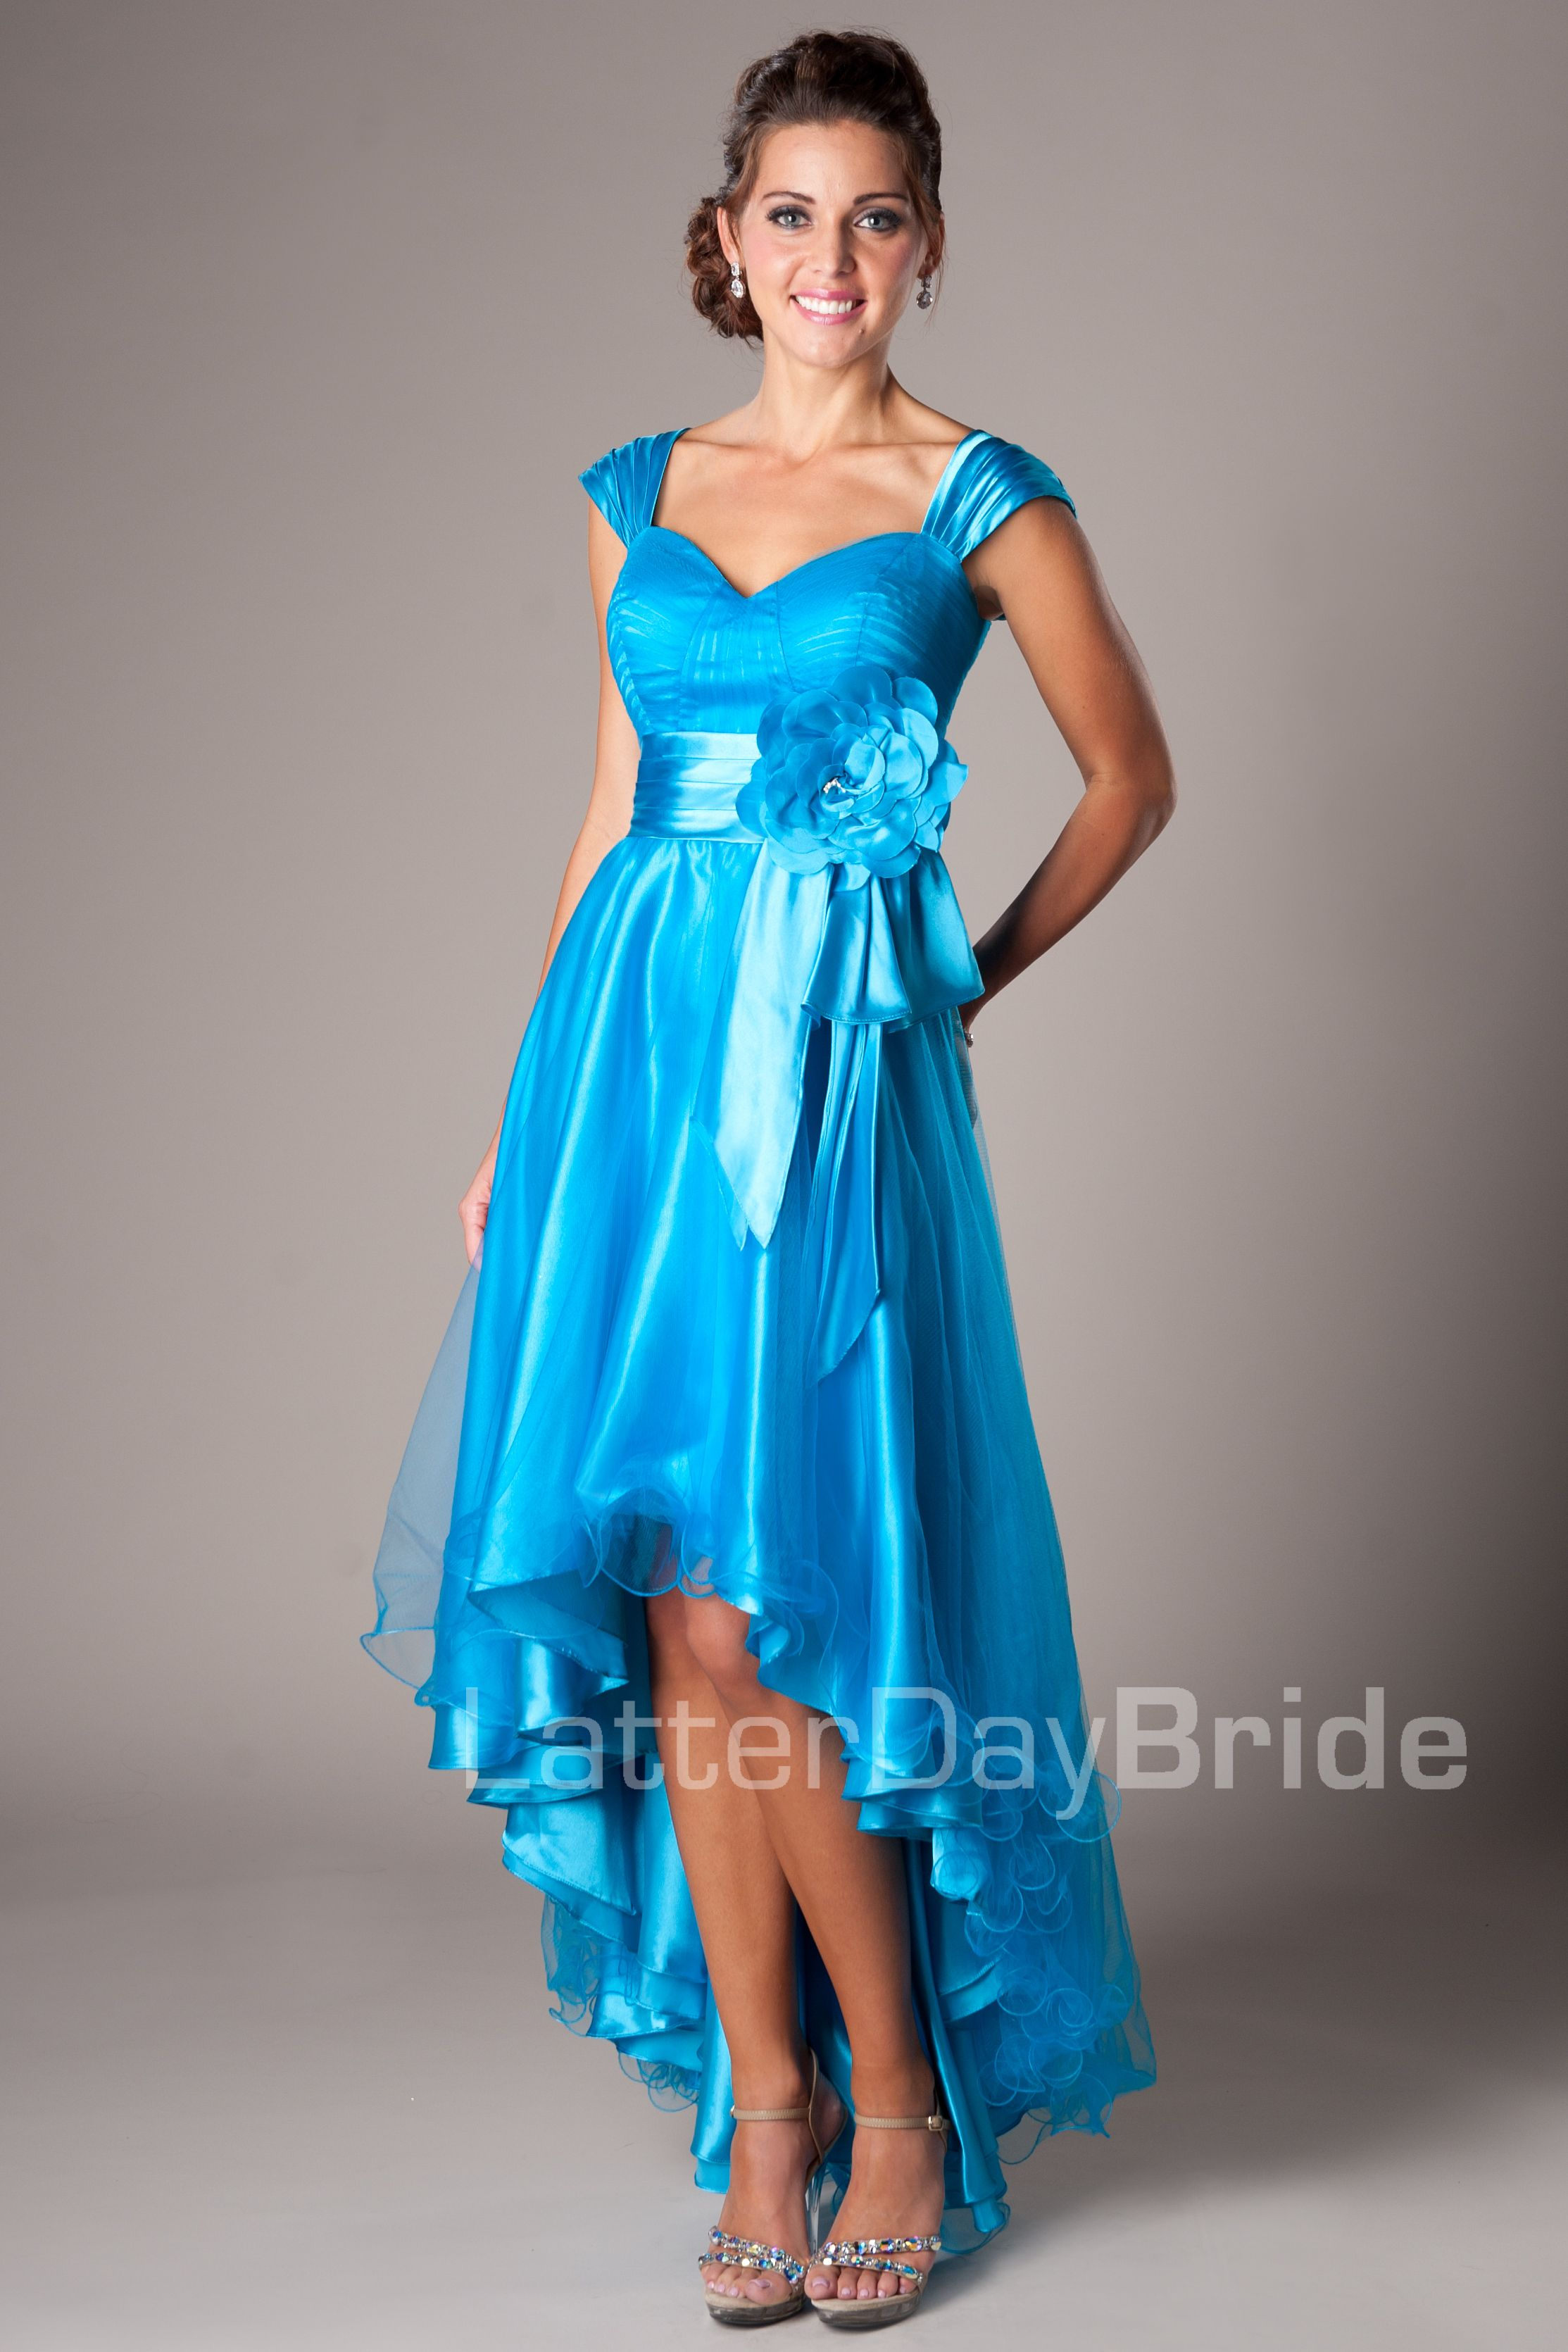 Modest Prom Dresses Prom Homecoming Formal Dance Modest - Summer ...